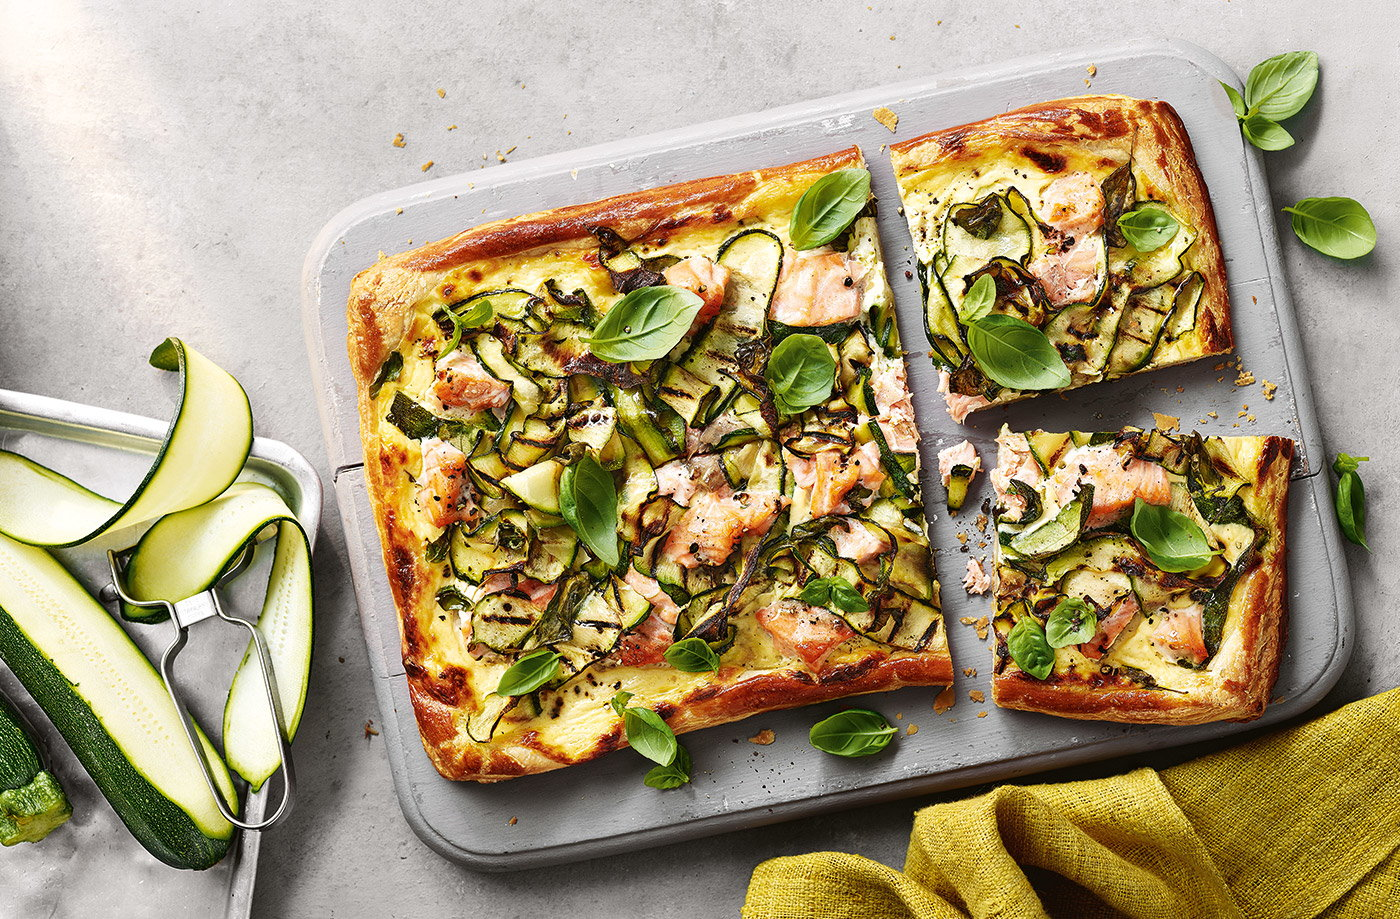 Charred courgette and salmon tart recipe